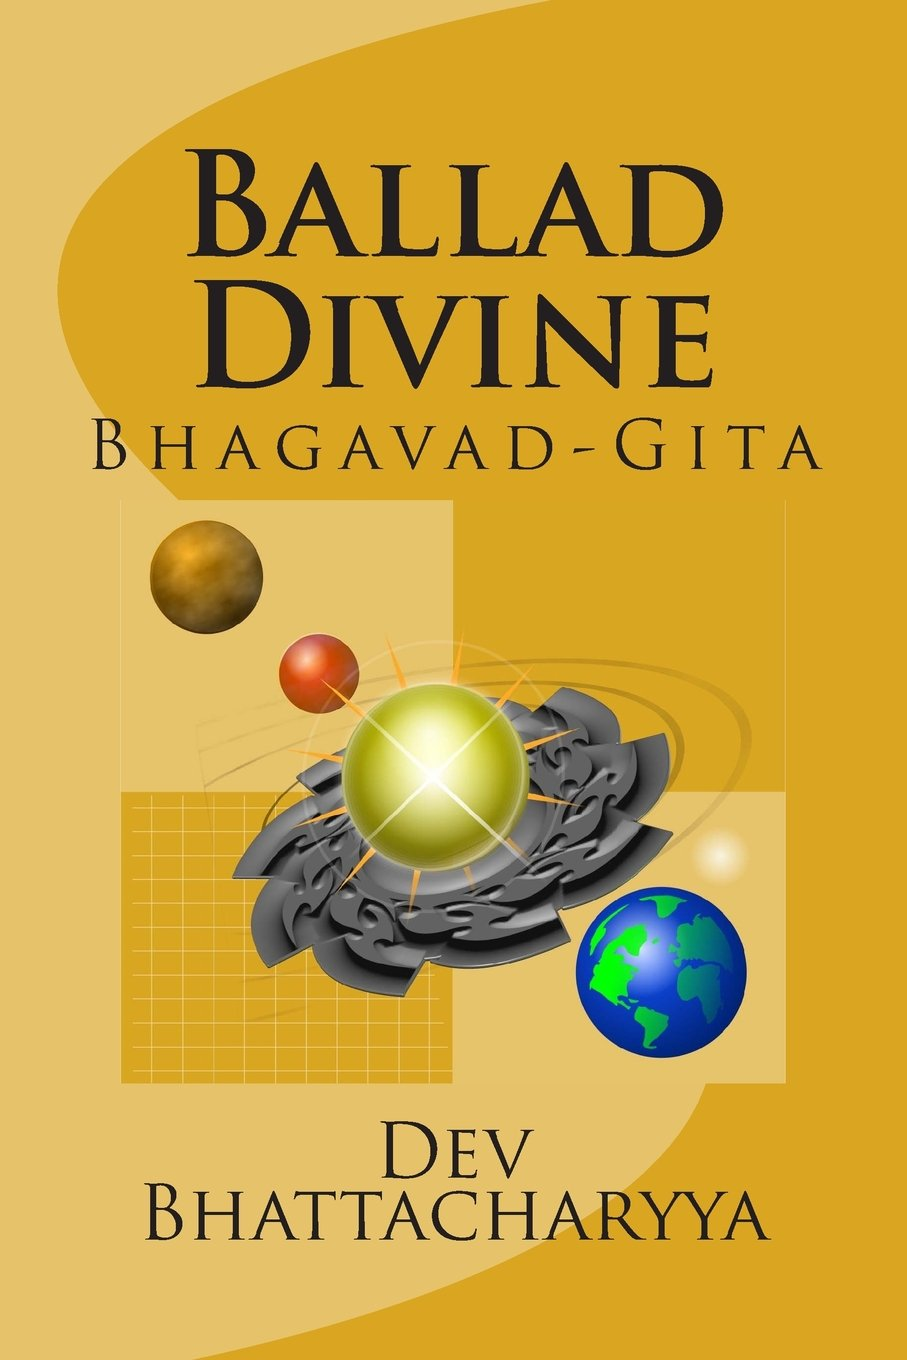 The Ballad Divine by Dev Bhattacharyya